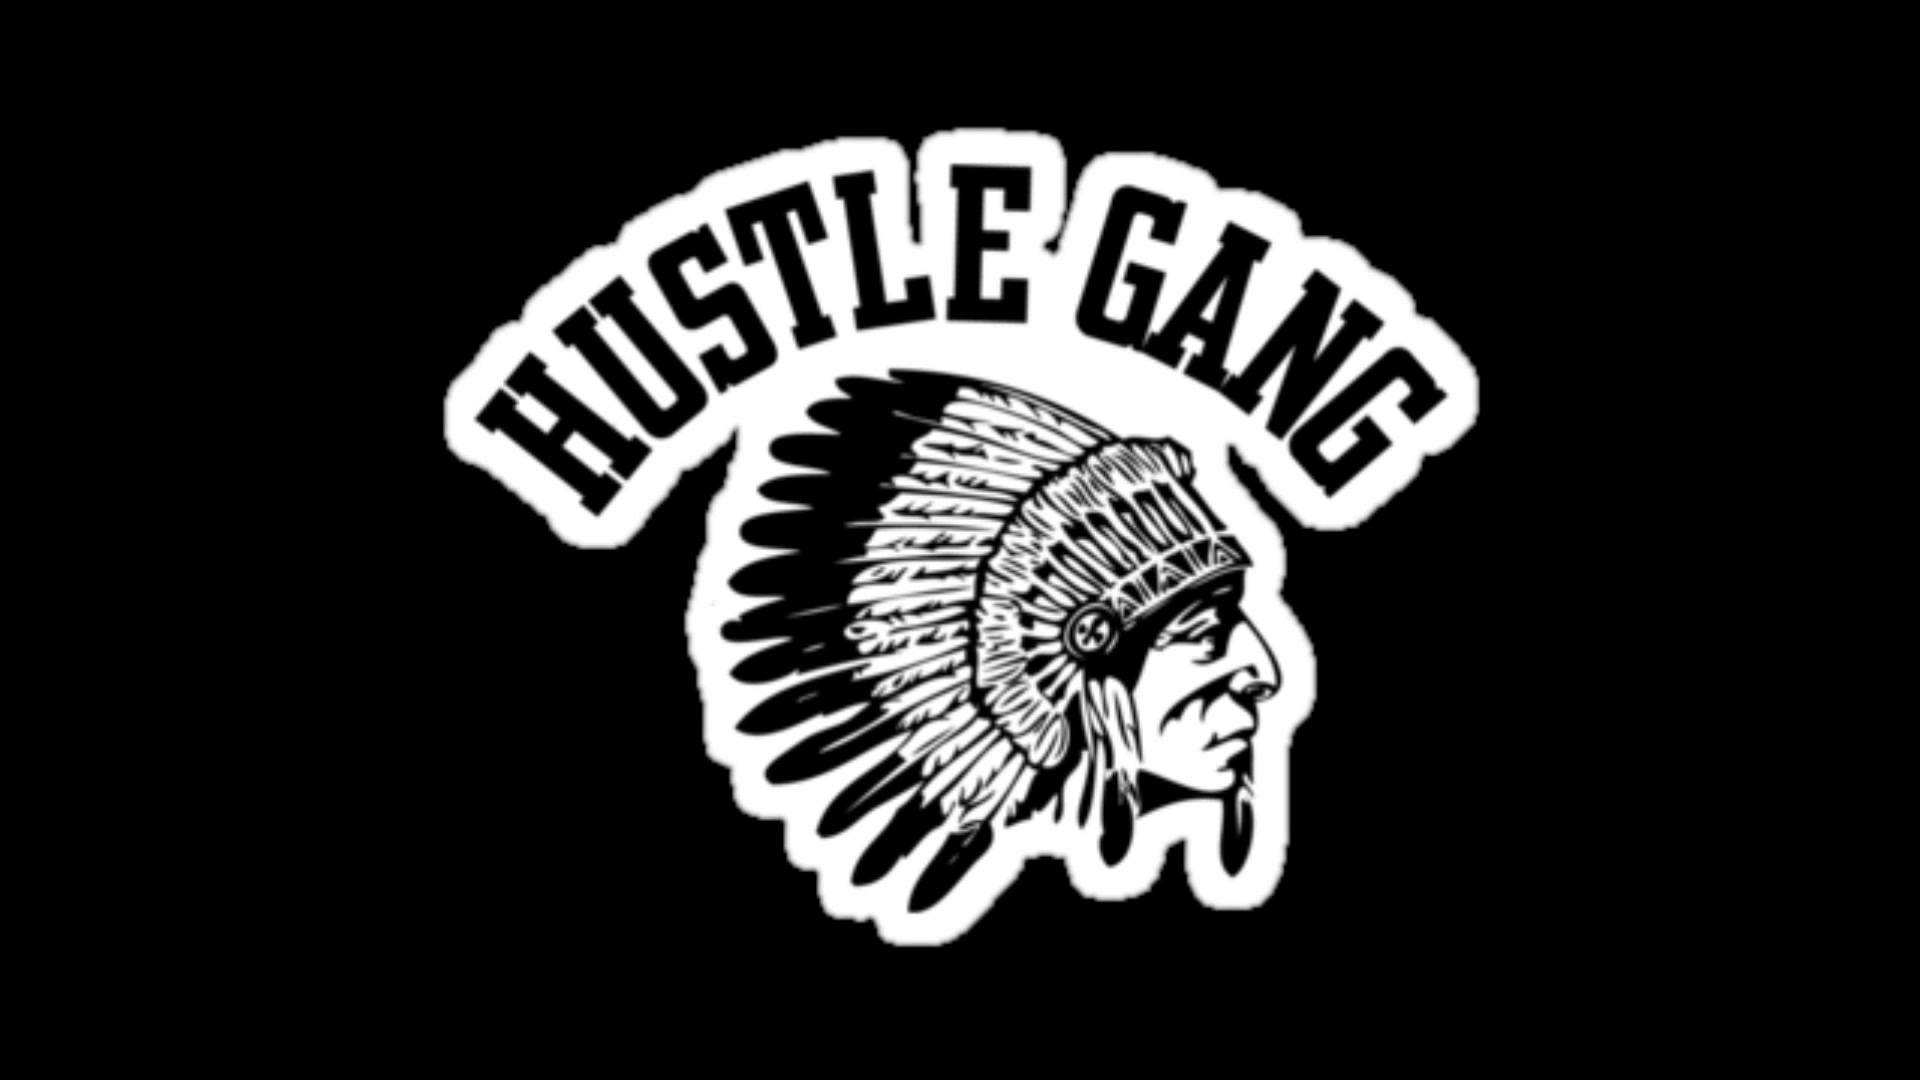 Hustle Gang ft TI BoBSpodee Chosen Lyrics Mp3 Download 1920x1080